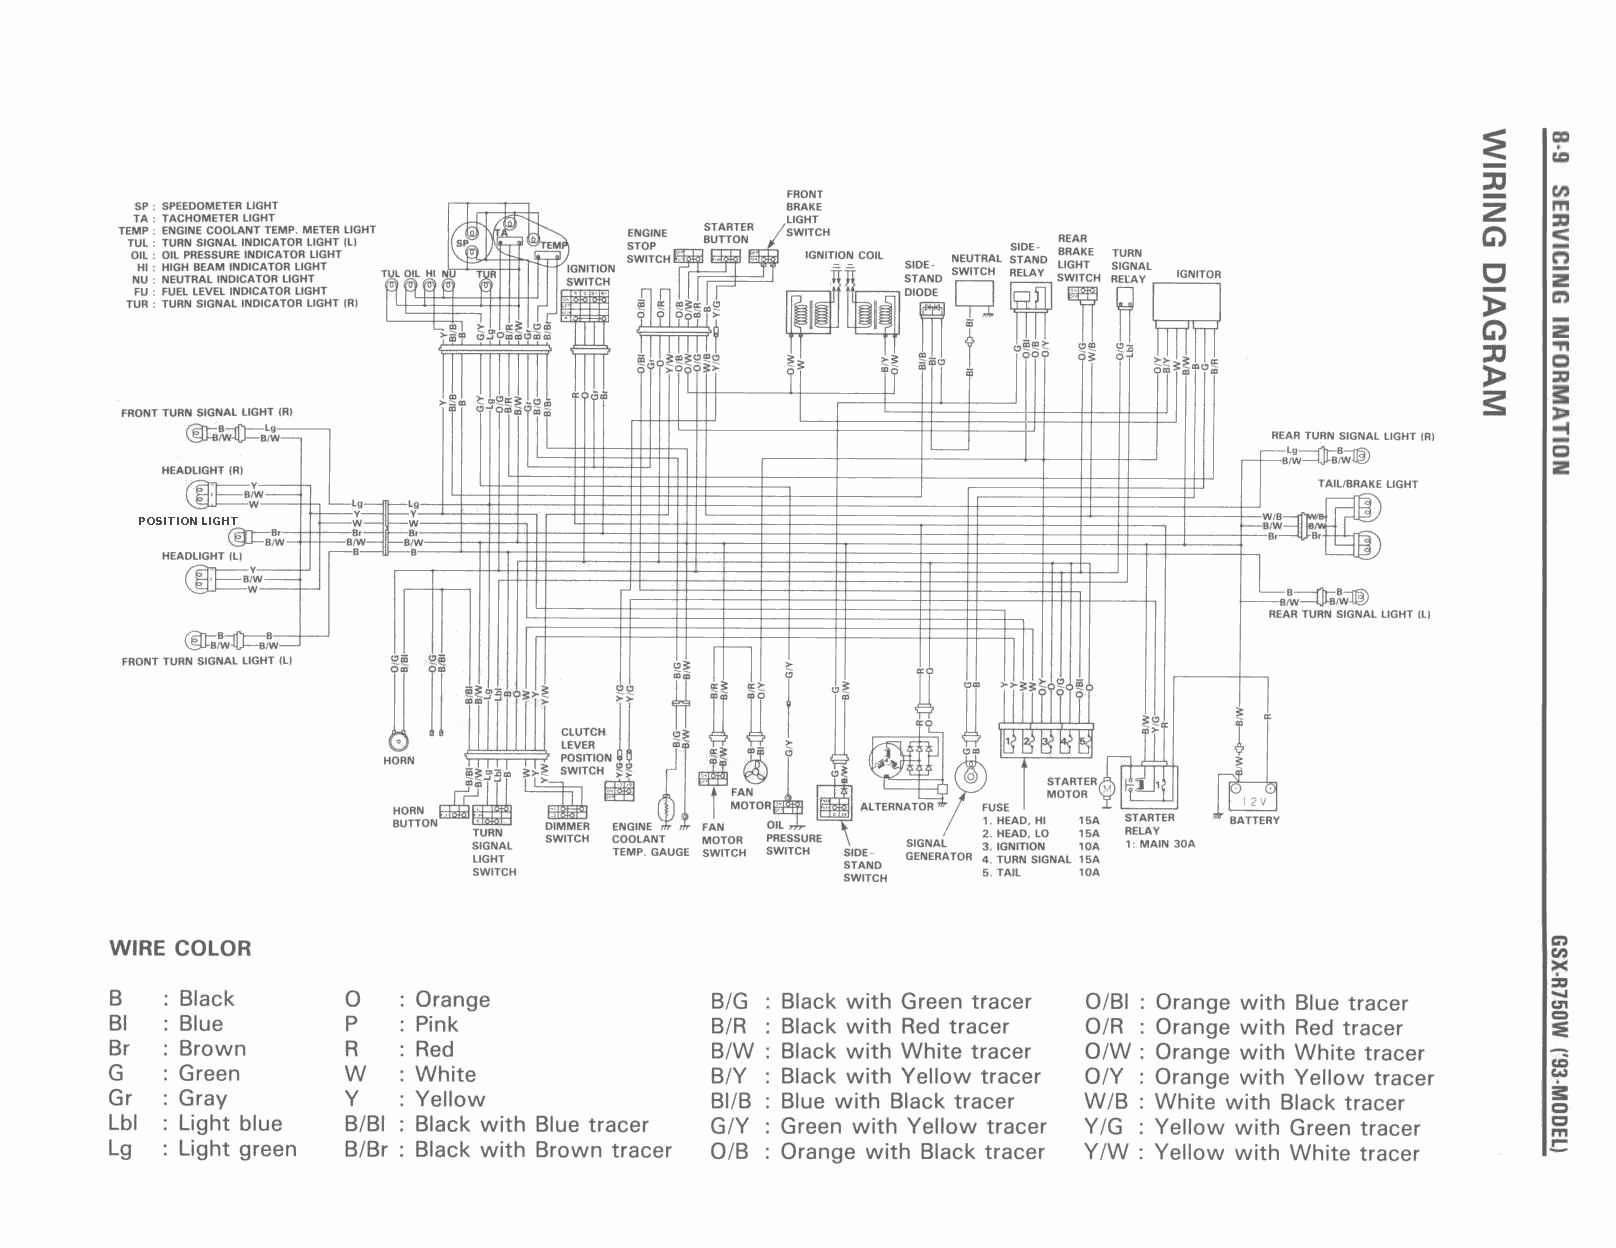 Yzf Wiring Diagram on smart car diagrams, battery diagrams, internet of things diagrams, snatch block diagrams, led circuit diagrams, troubleshooting diagrams, pinout diagrams, series and parallel circuits diagrams, friendship bracelet diagrams, motor diagrams, electrical diagrams, transformer diagrams, sincgars radio configurations diagrams, hvac diagrams, switch diagrams, honda motorcycle repair diagrams, electronic circuit diagrams, engine diagrams, lighting diagrams, gmc fuse box diagrams,